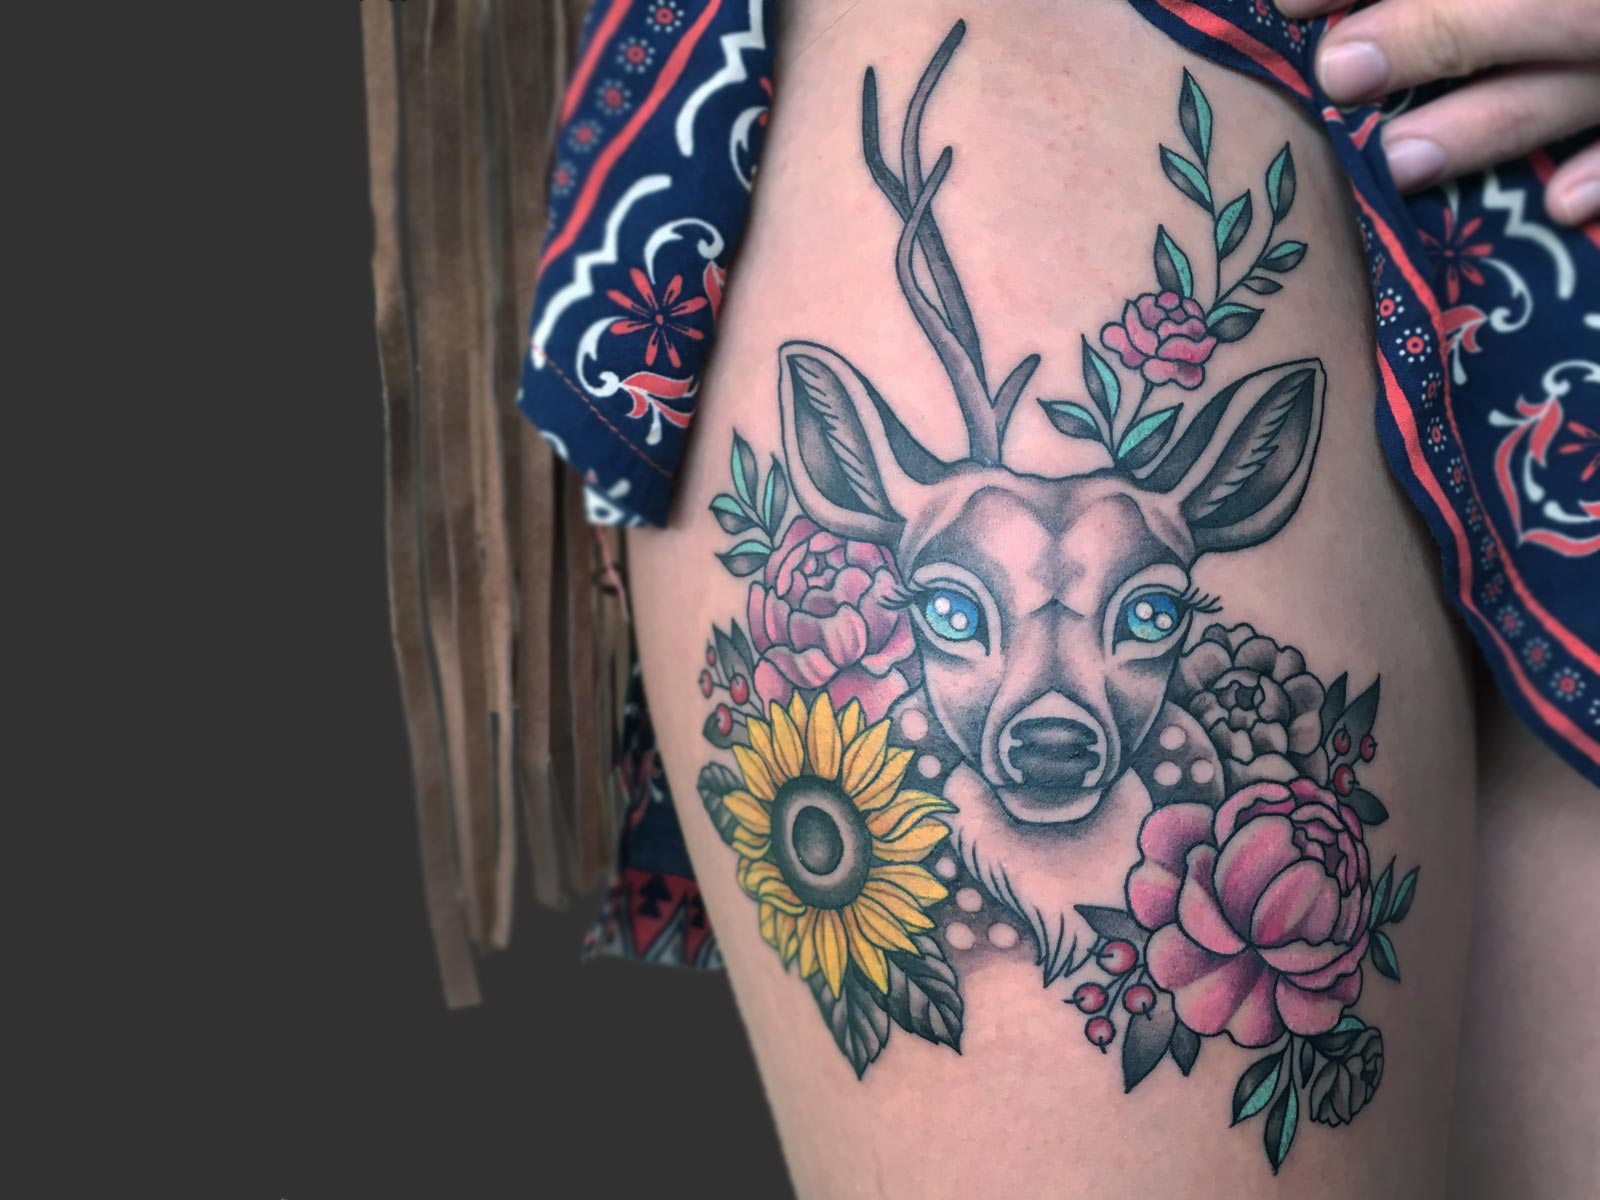 rock-of-ages-tattoo-merry-deer